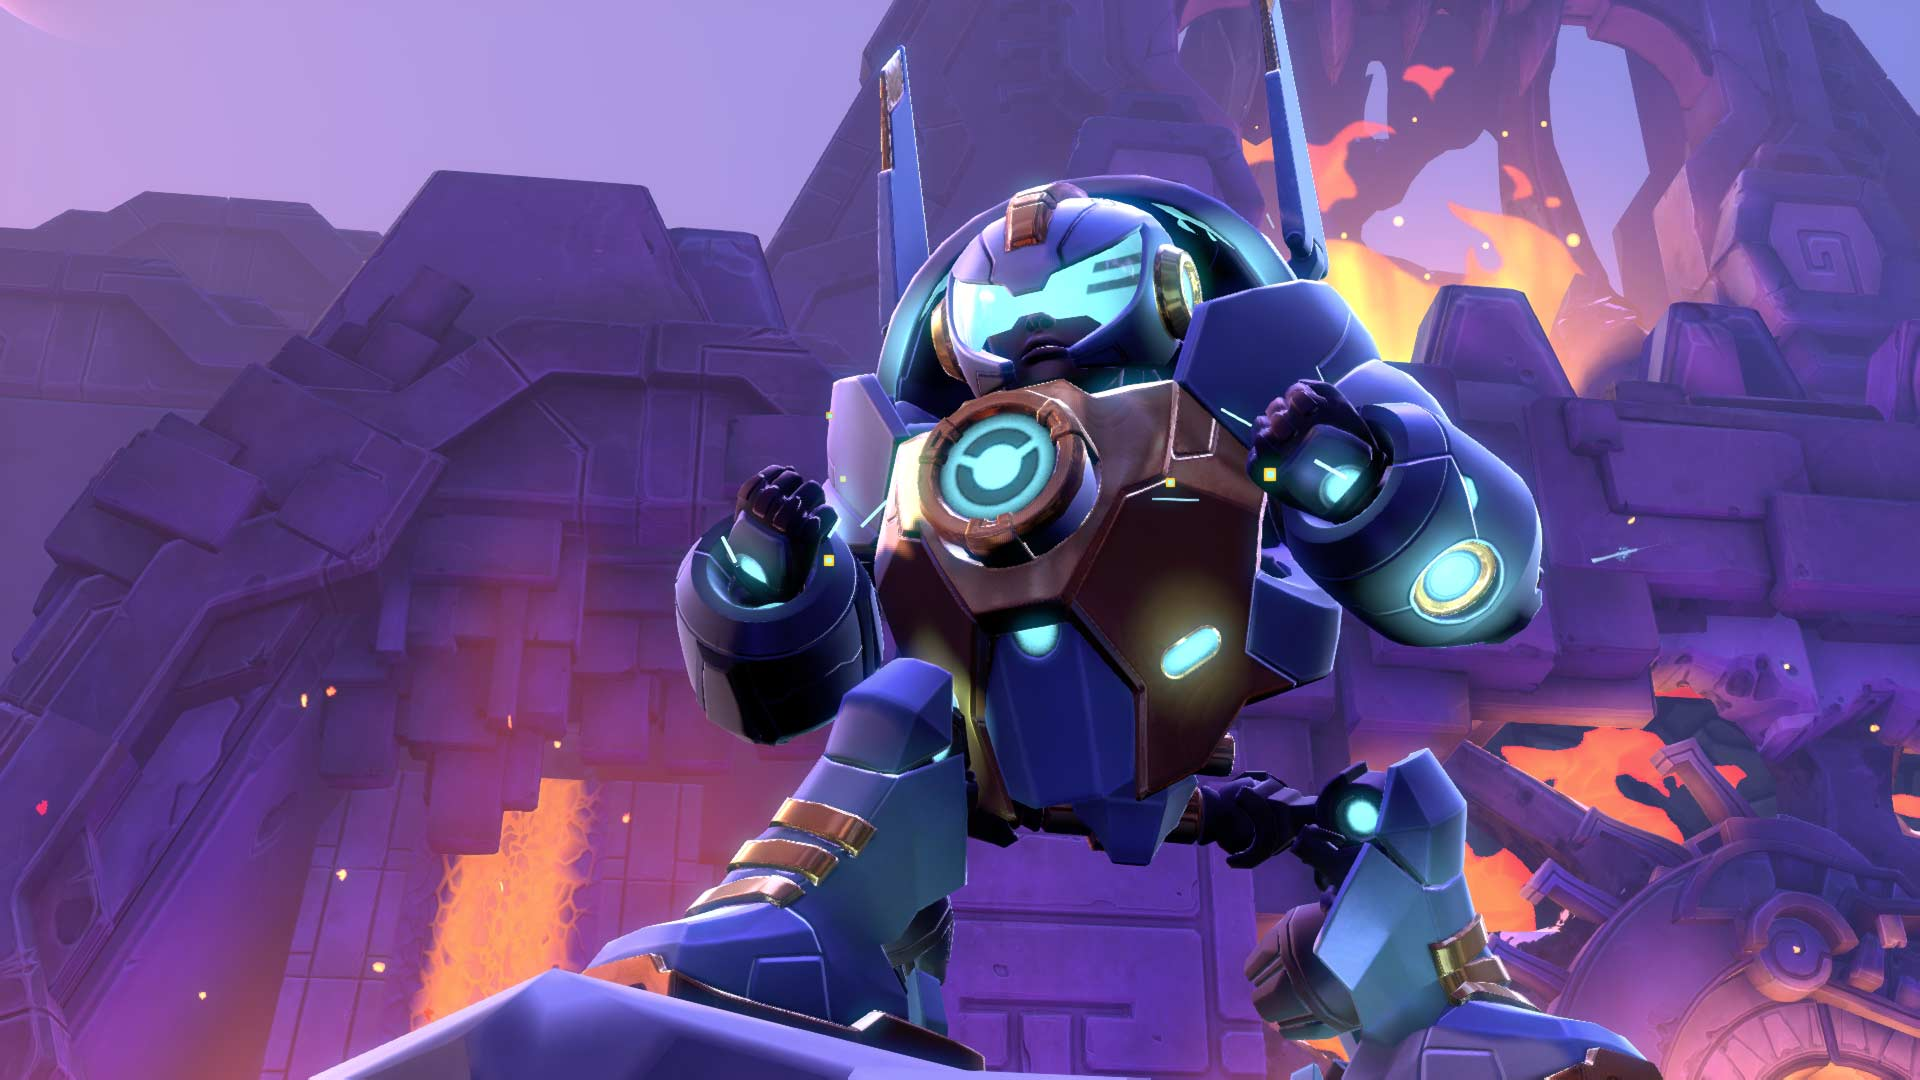 New Character Available In Battleborn For Season Pass Holders